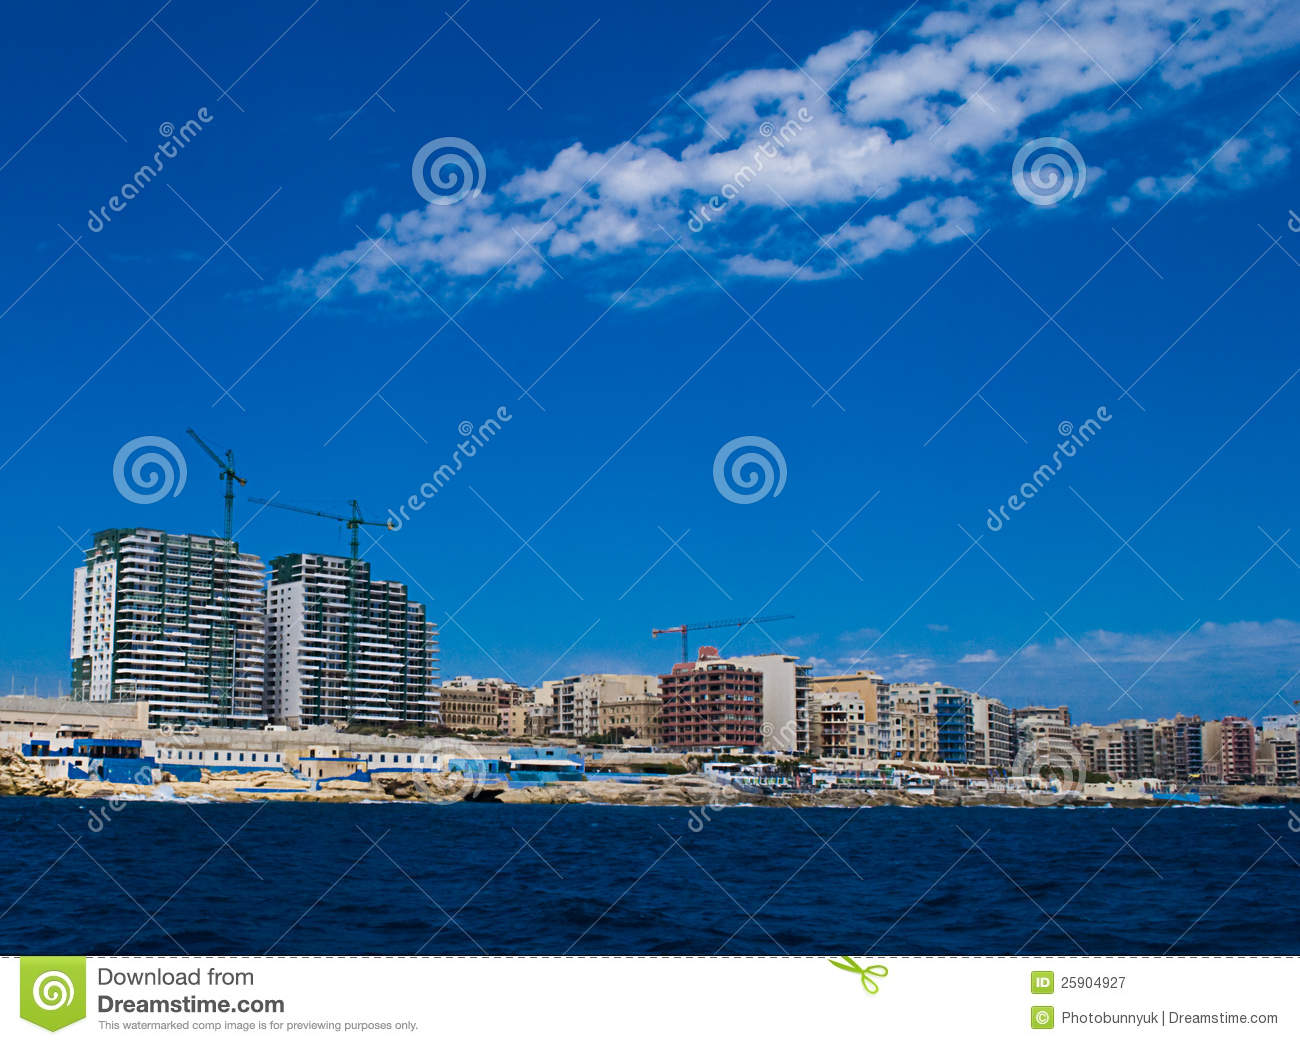 Holiday Apartments In Malta Stock Image - Image of valetta ...